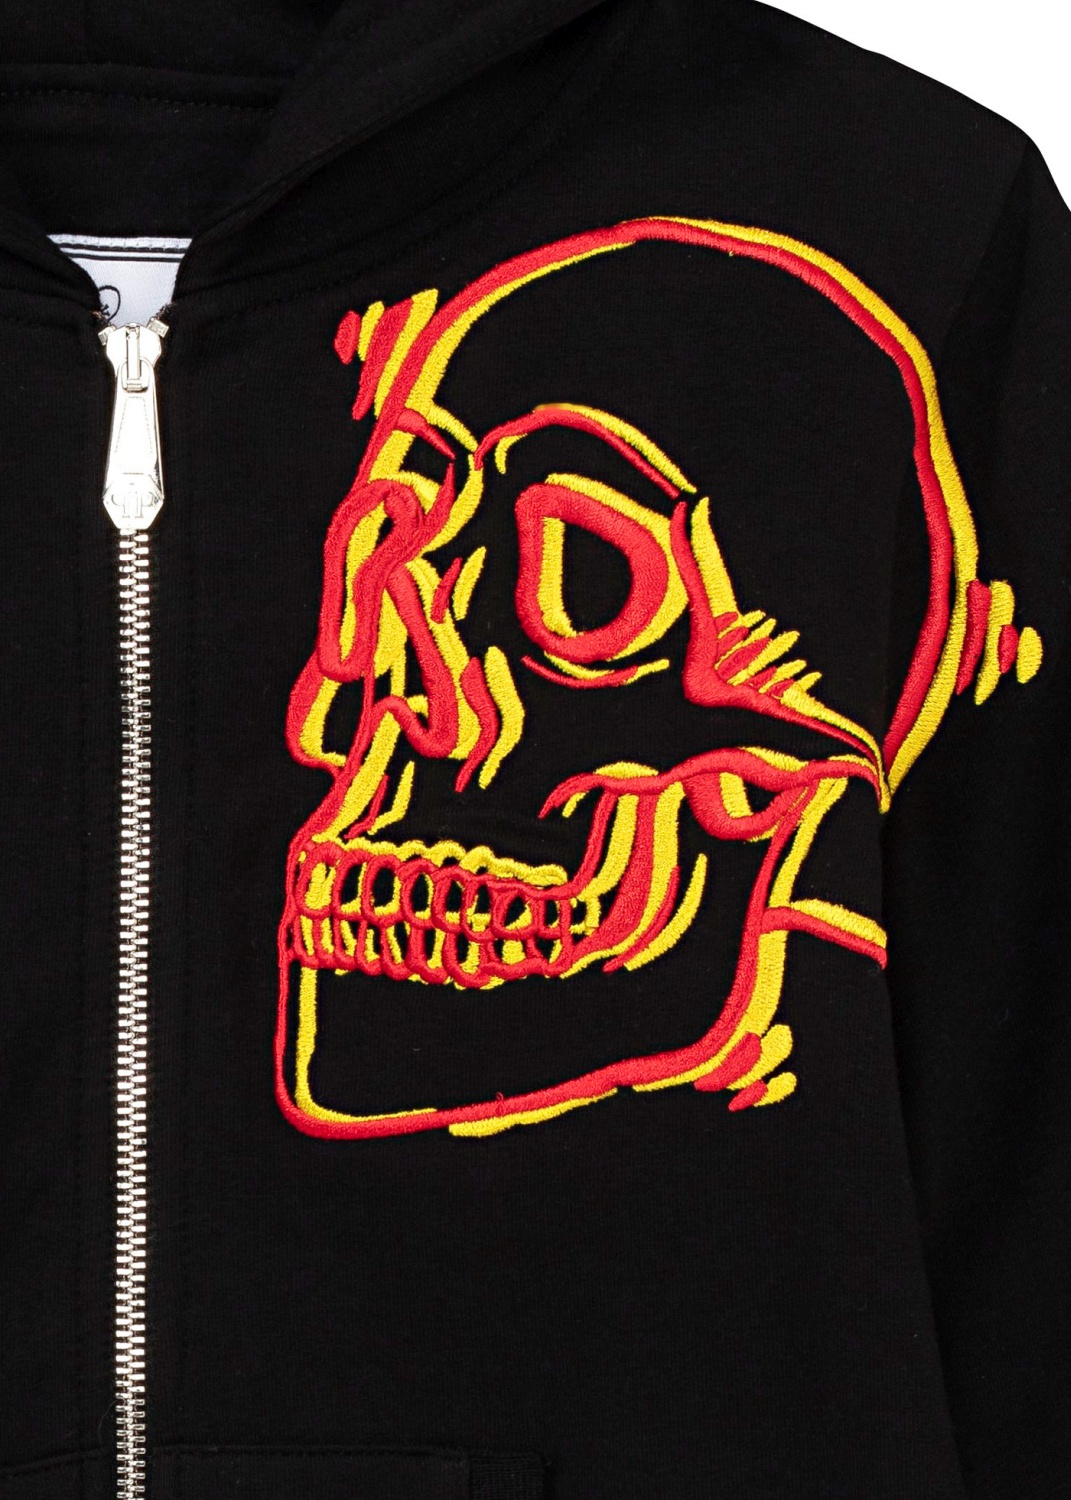 New Embroided Skull Zip jacket image number 2